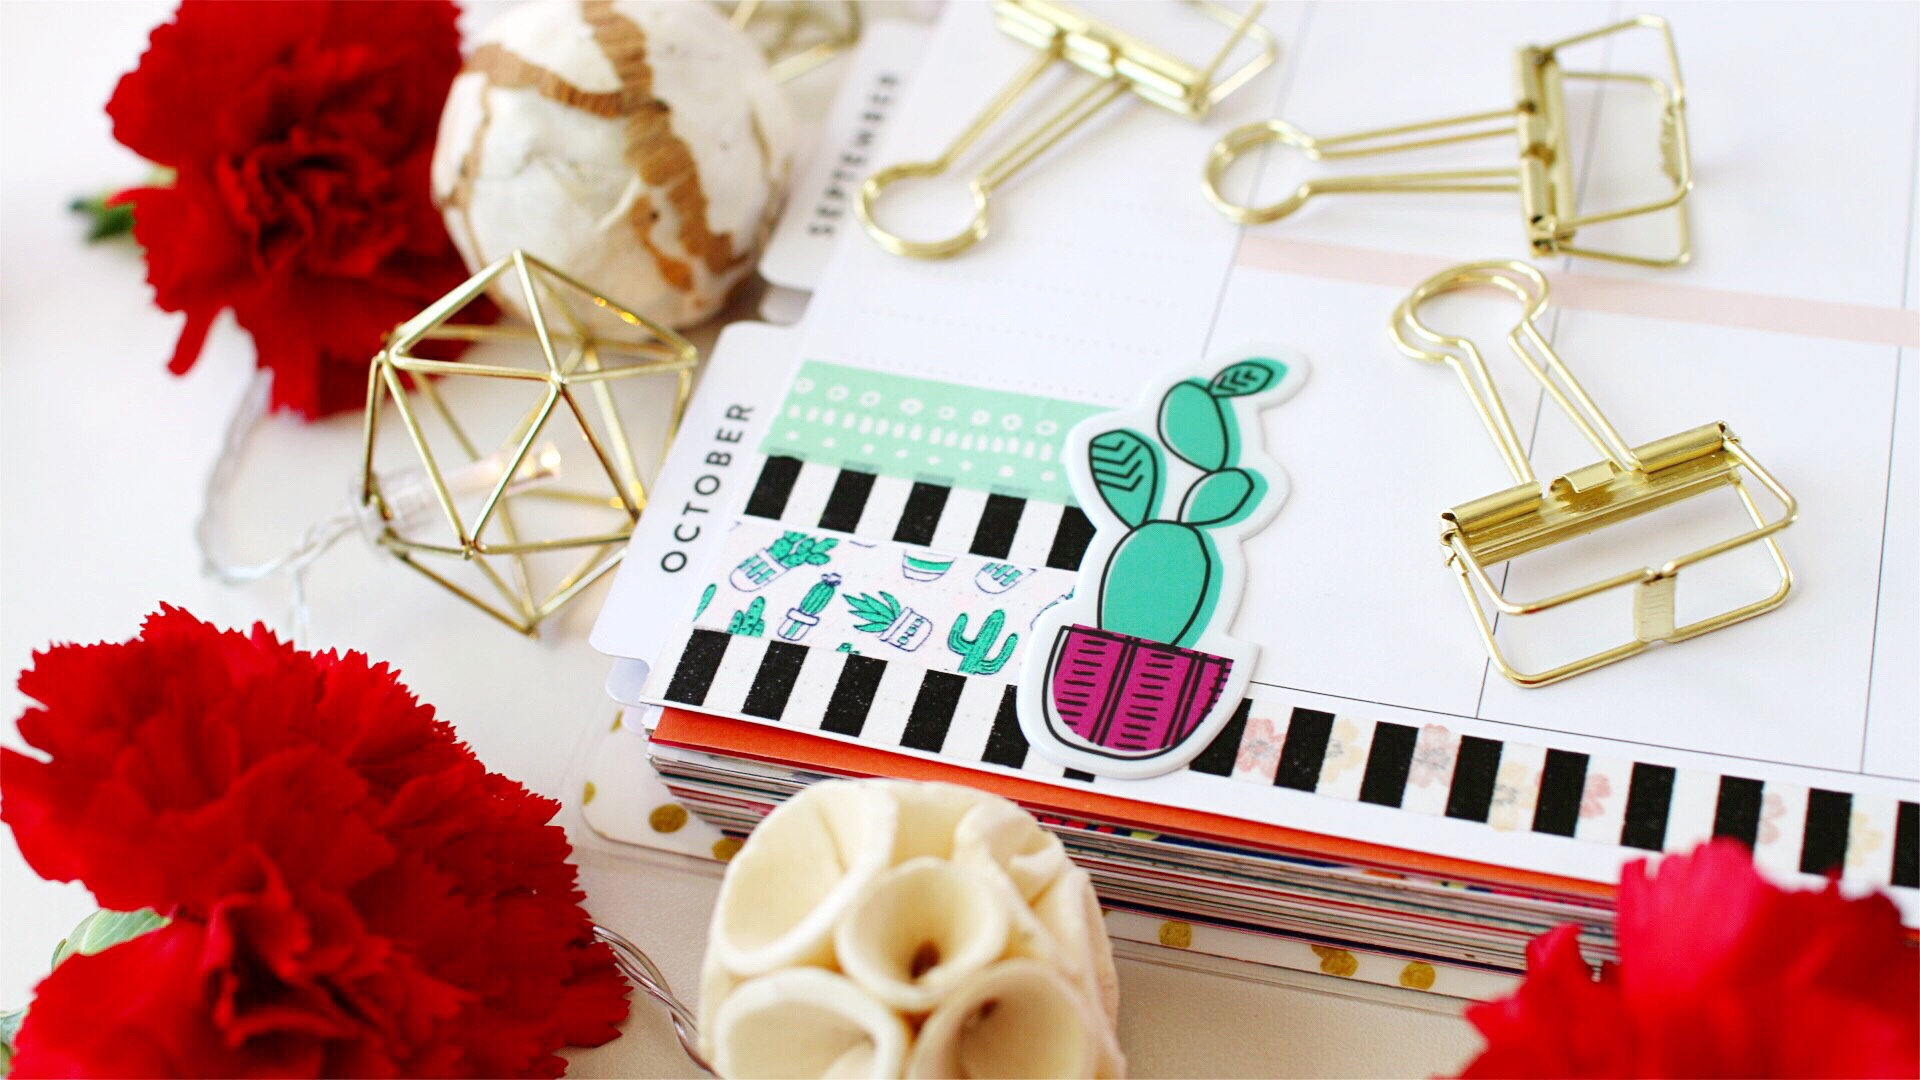 Top 10 Pinterest Ideas for Washi Tape in your Planner! graphic